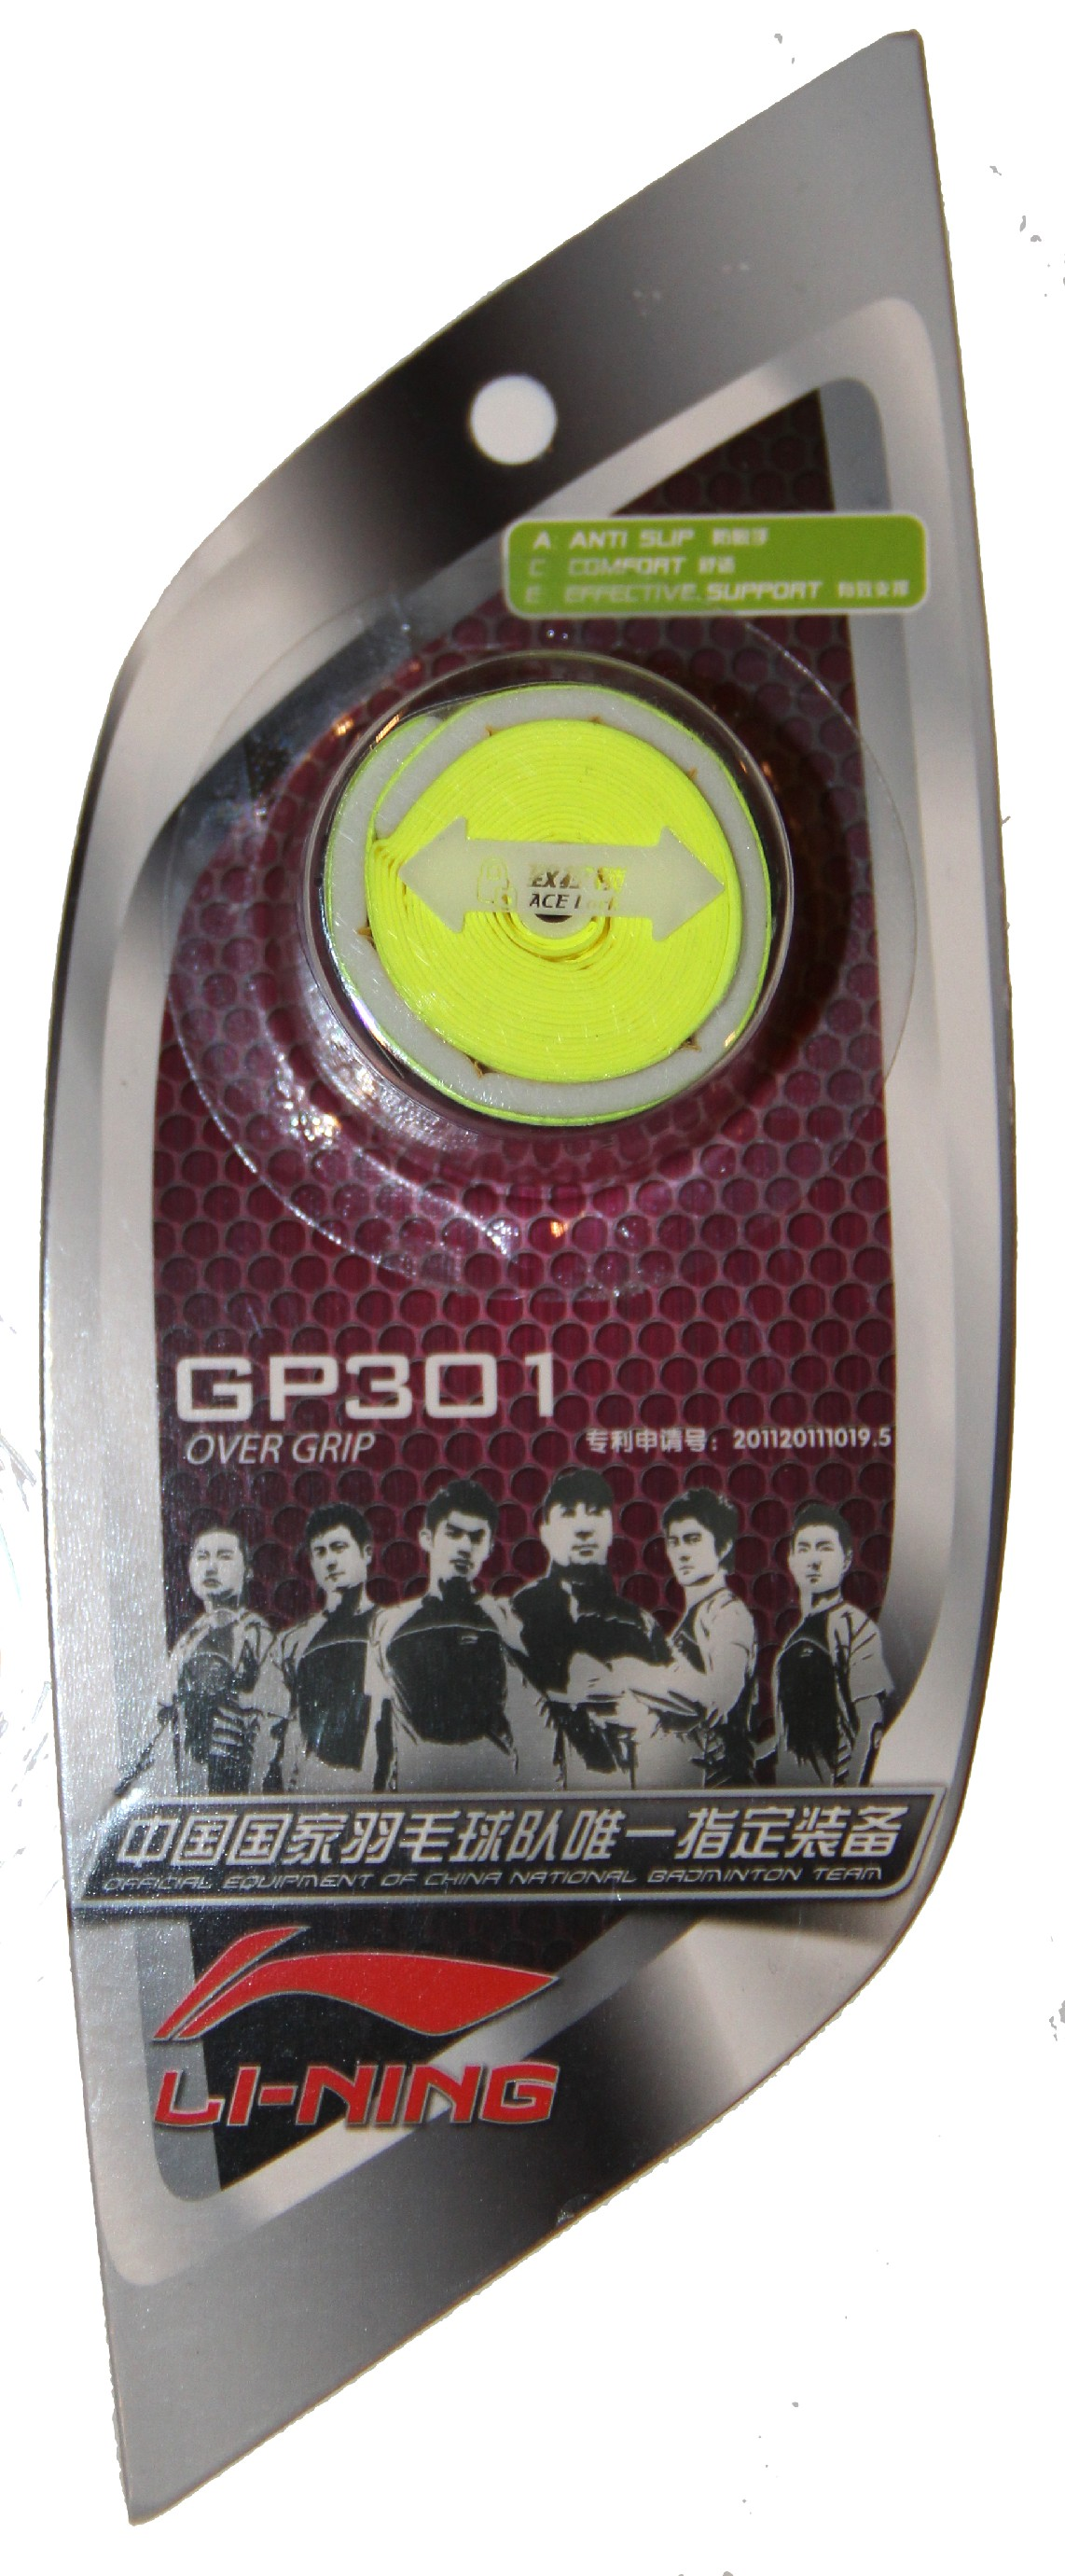 Overgrip LI-NING GP 301 flash green, reflexní zelená